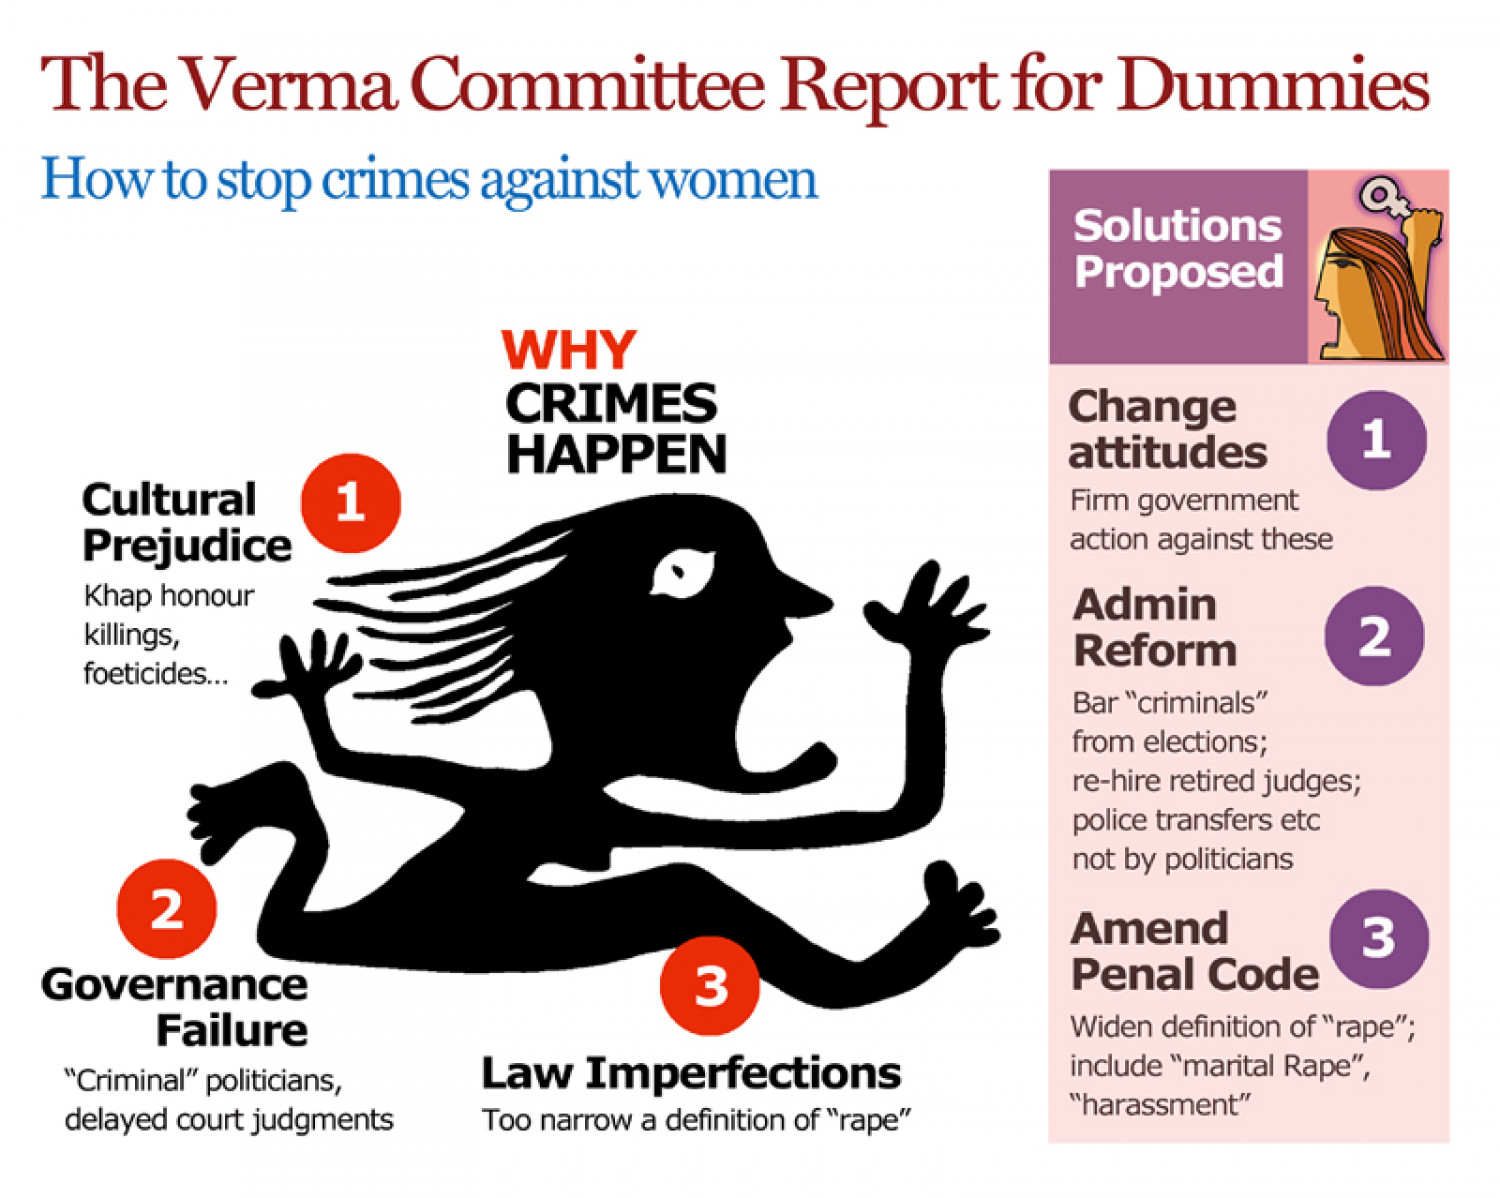 The Verma Committee Report for Dummies Infographic